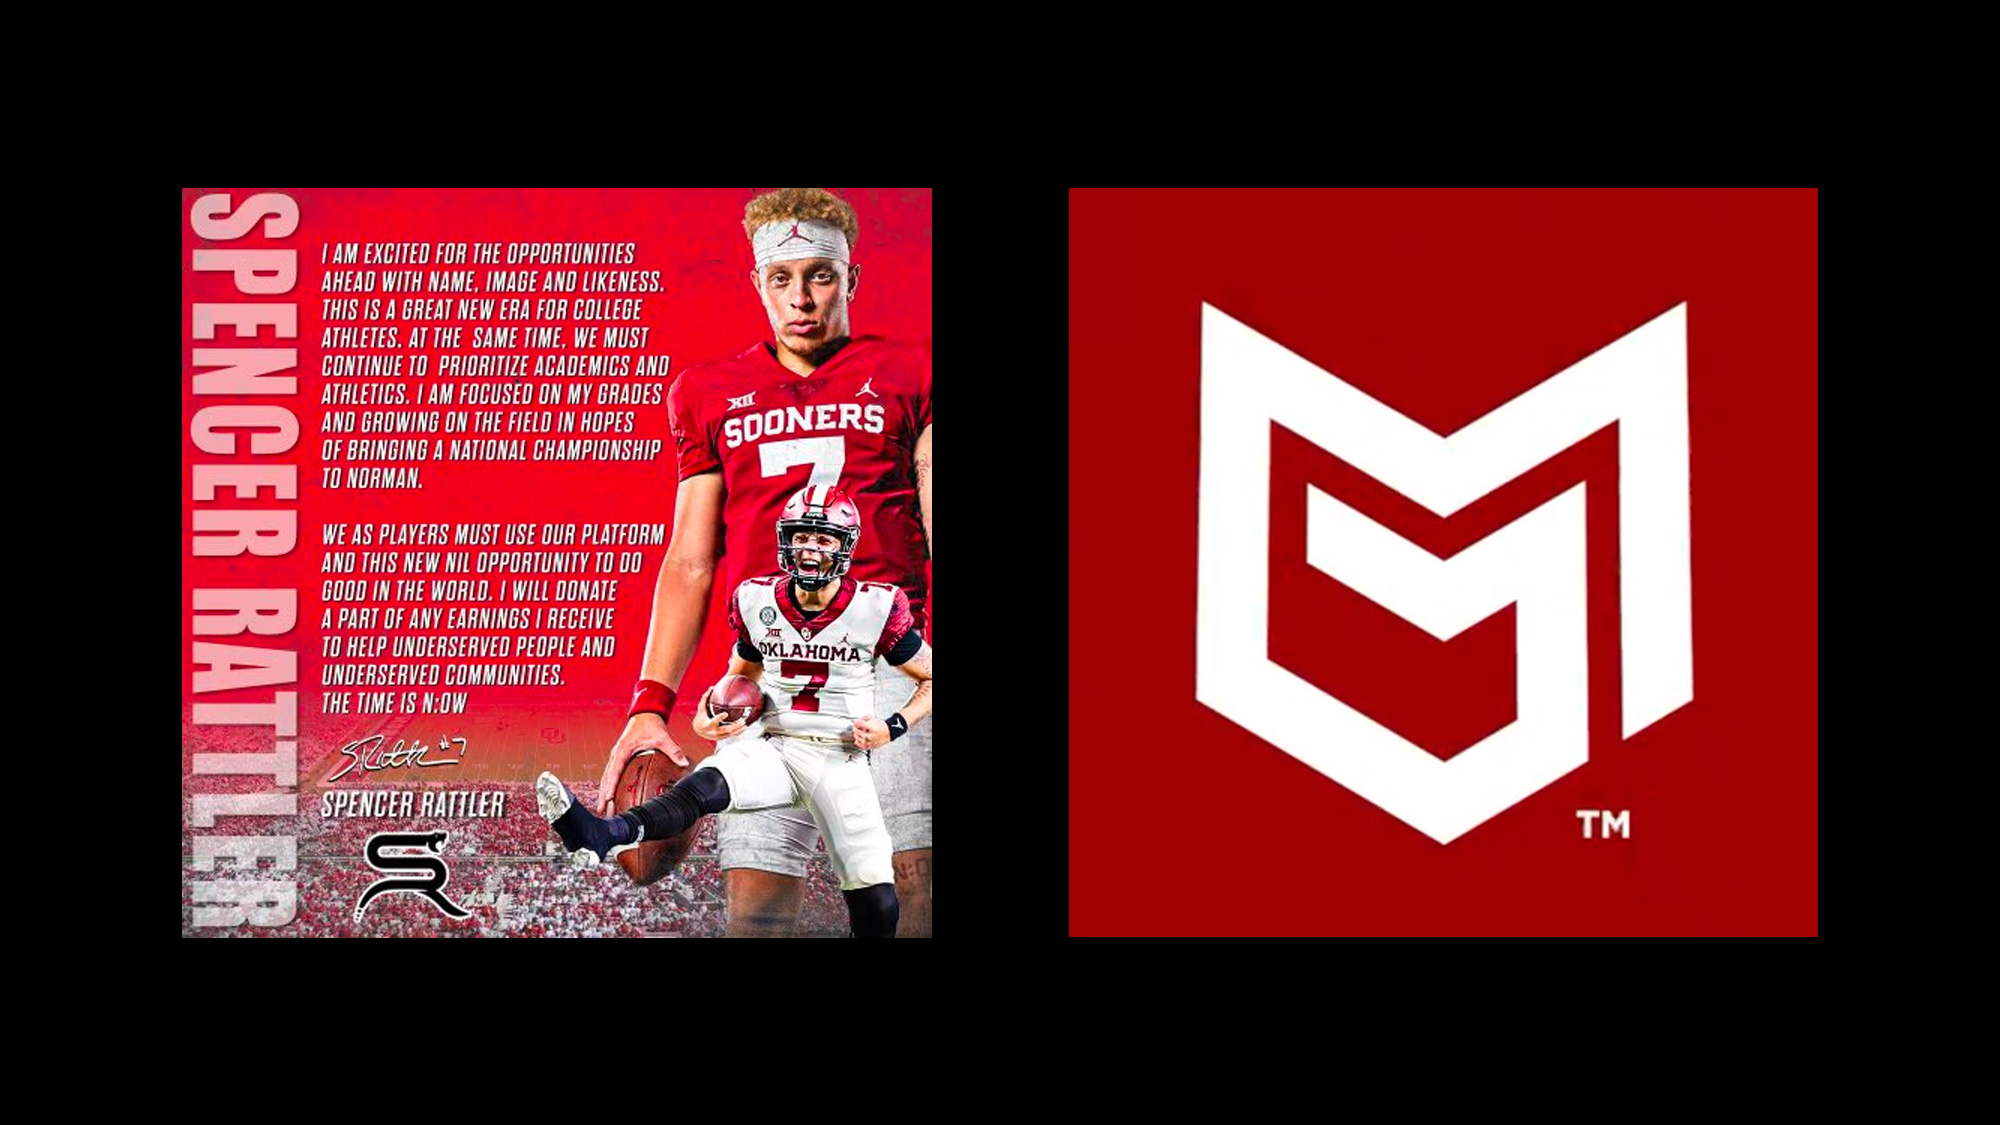 Here Come the Student Athlete Logos